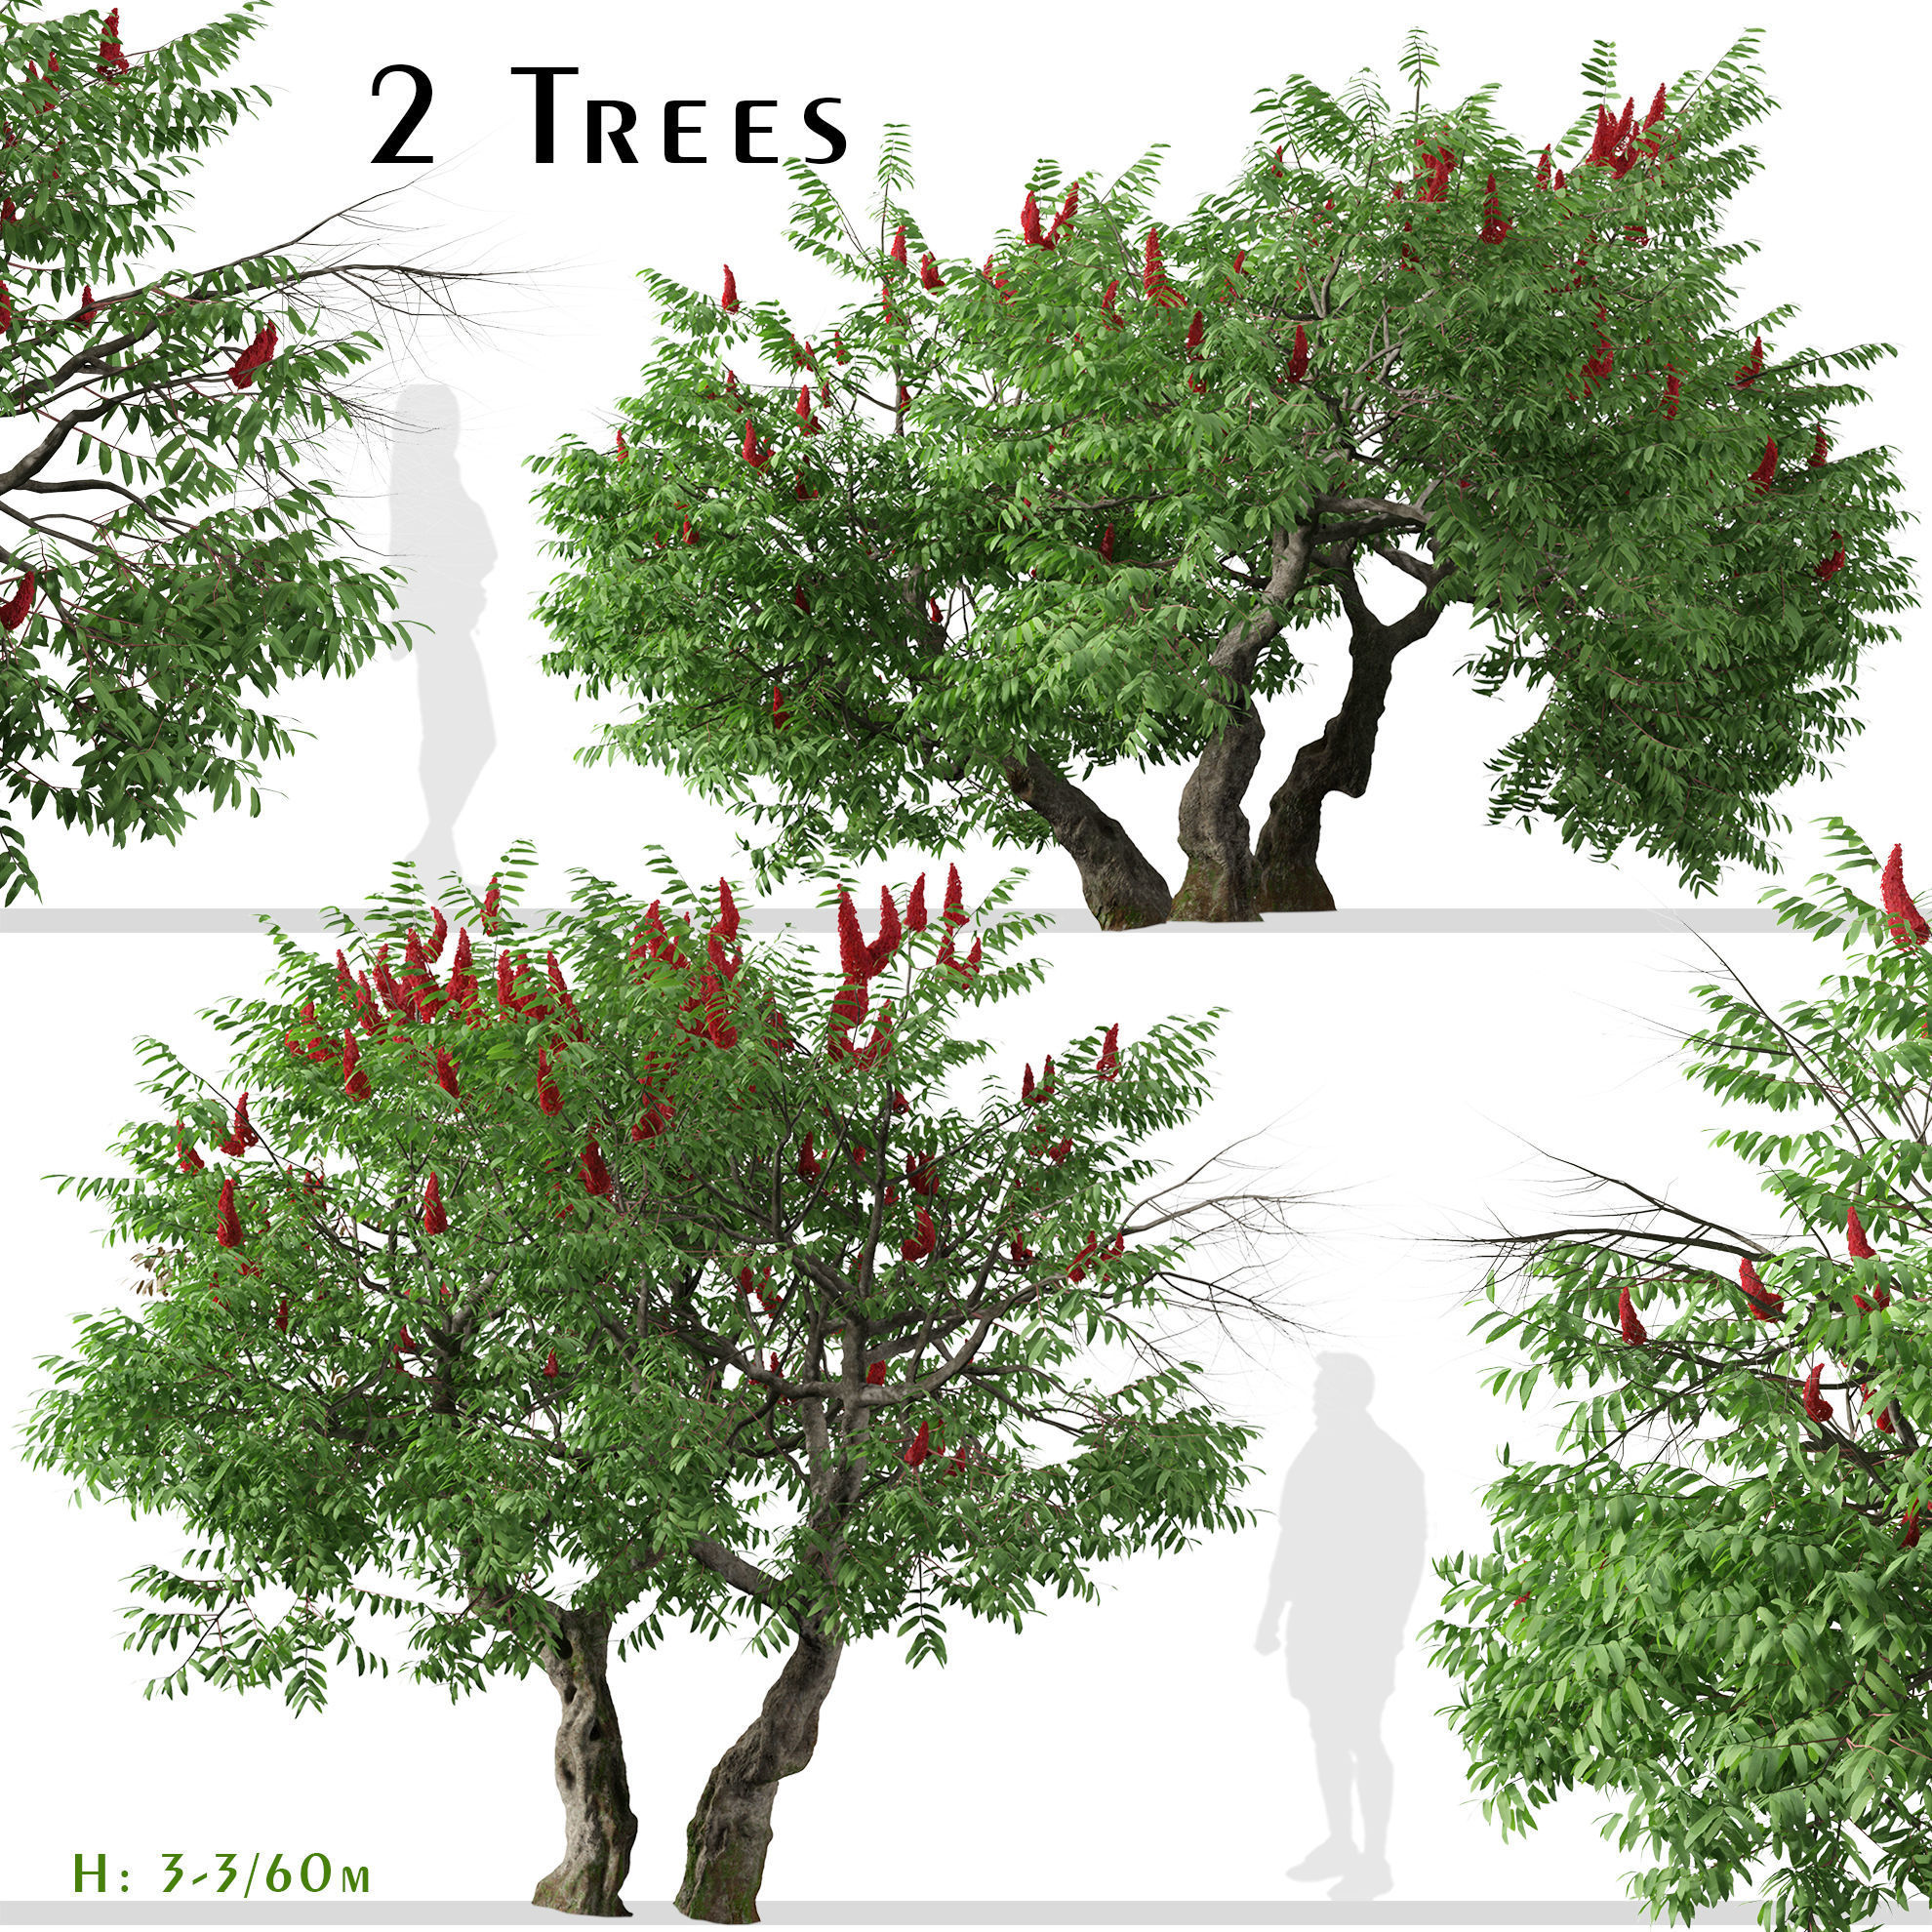 Set of Rhus typhina or Staghorn sumac Trees - 2 Trees